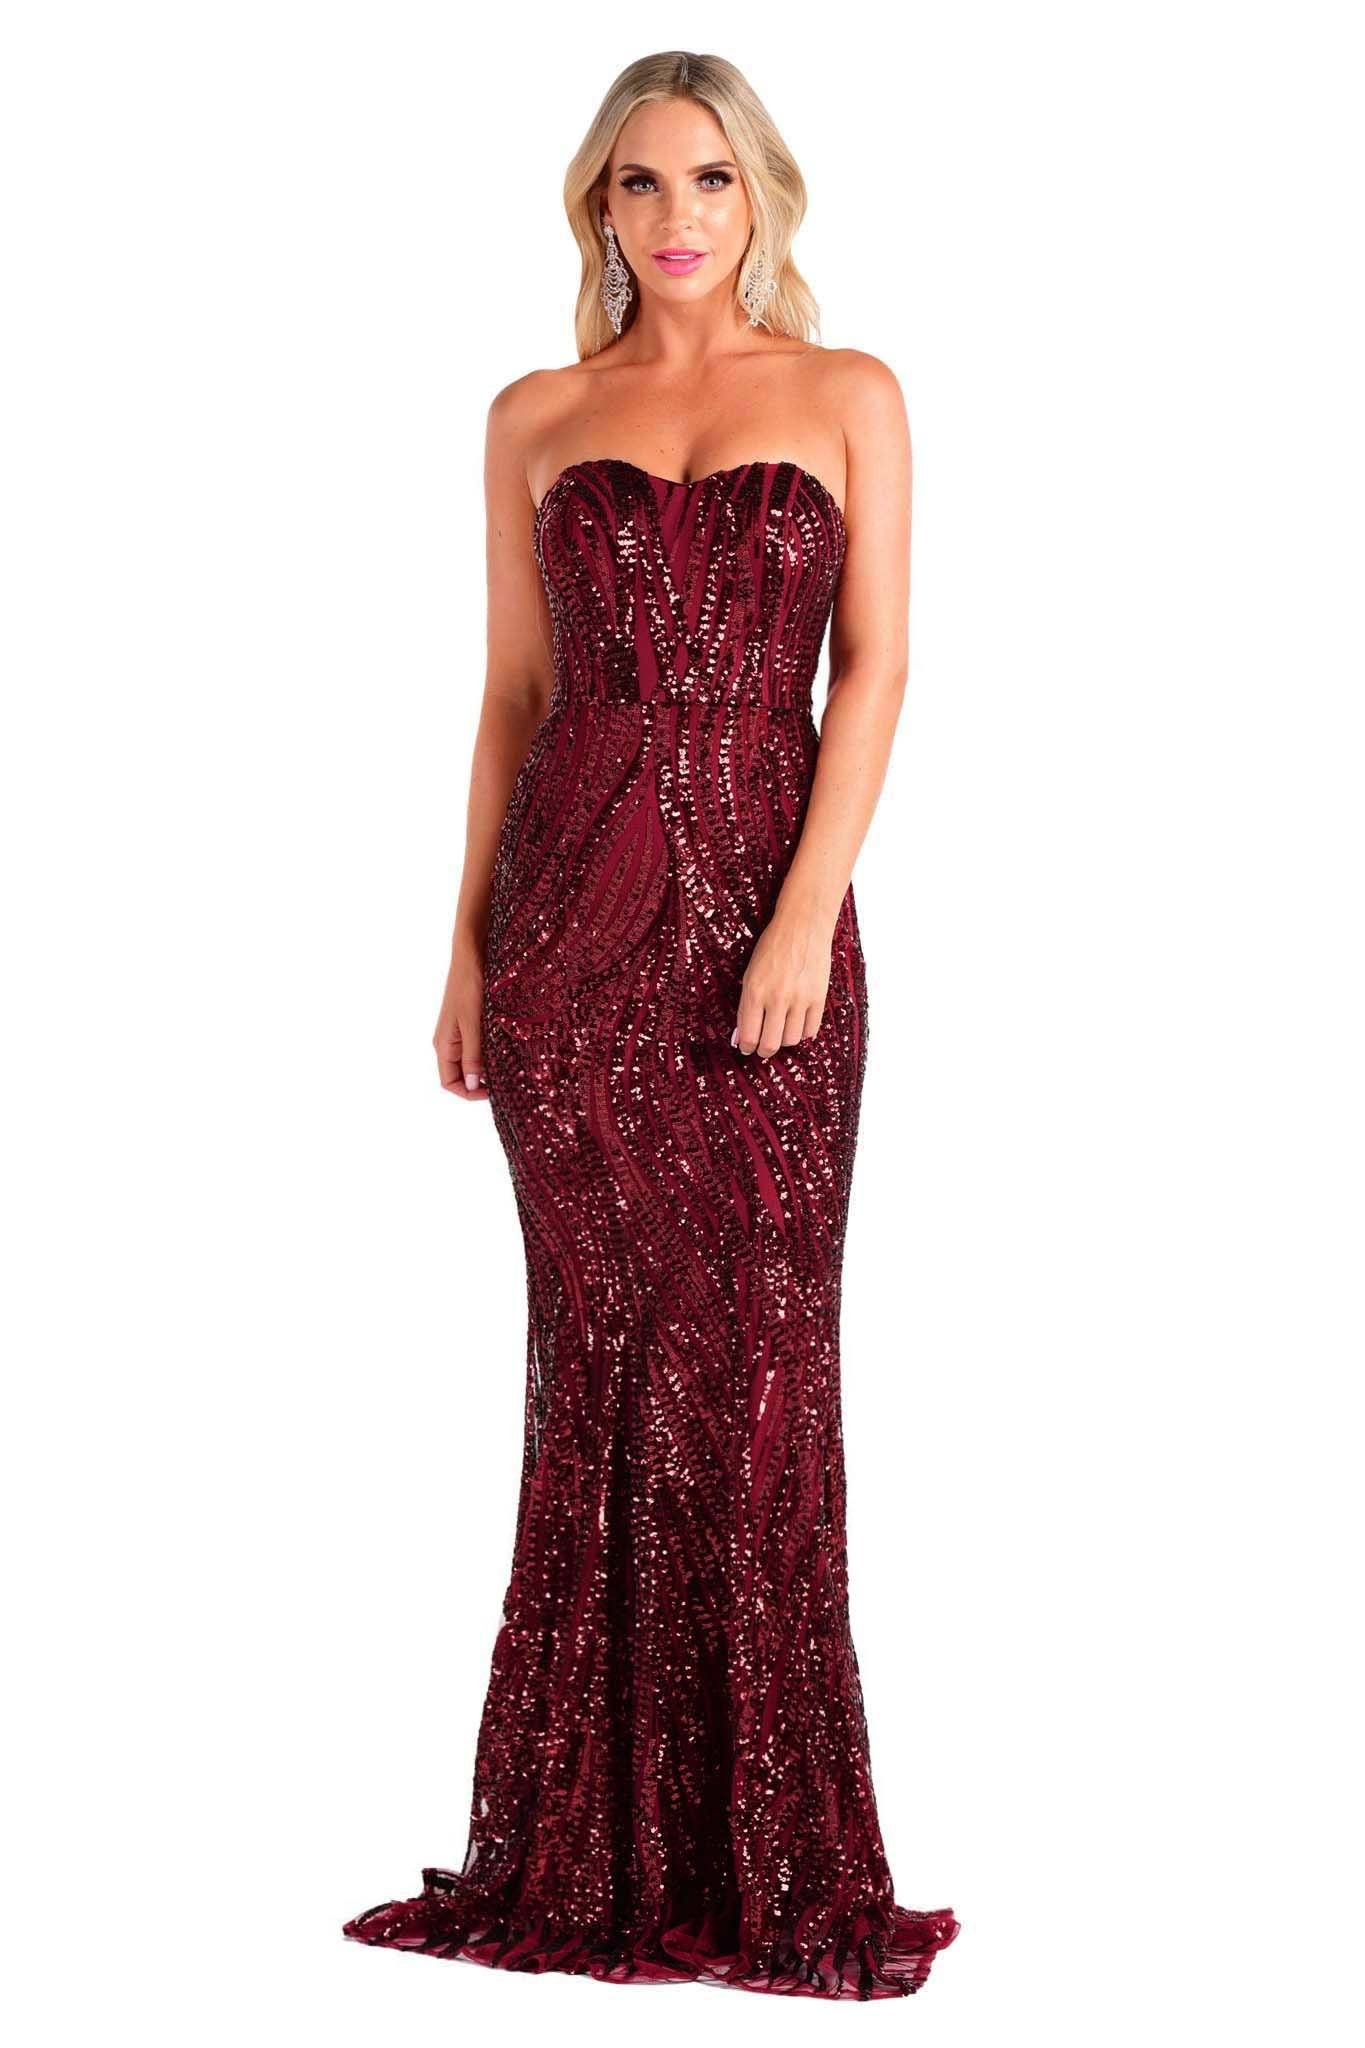 Burgundy deep red sleeveless fitted formal evening gown featuring strapless sweetheart neckline and flared floor-length skirt